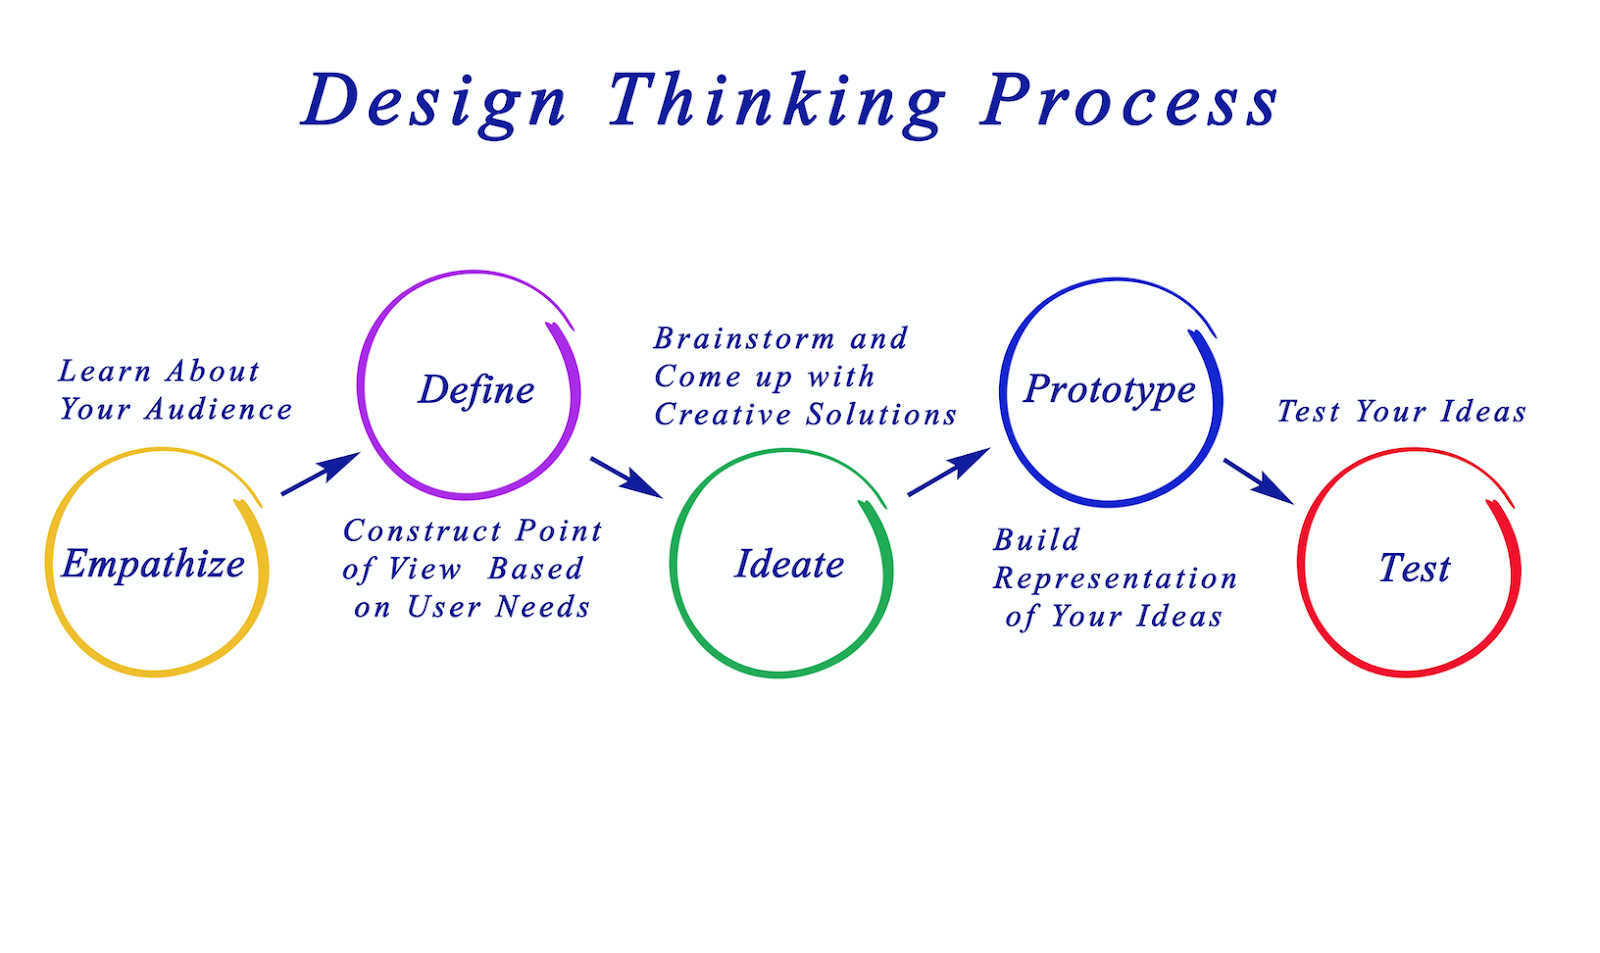 design thinking ideate process